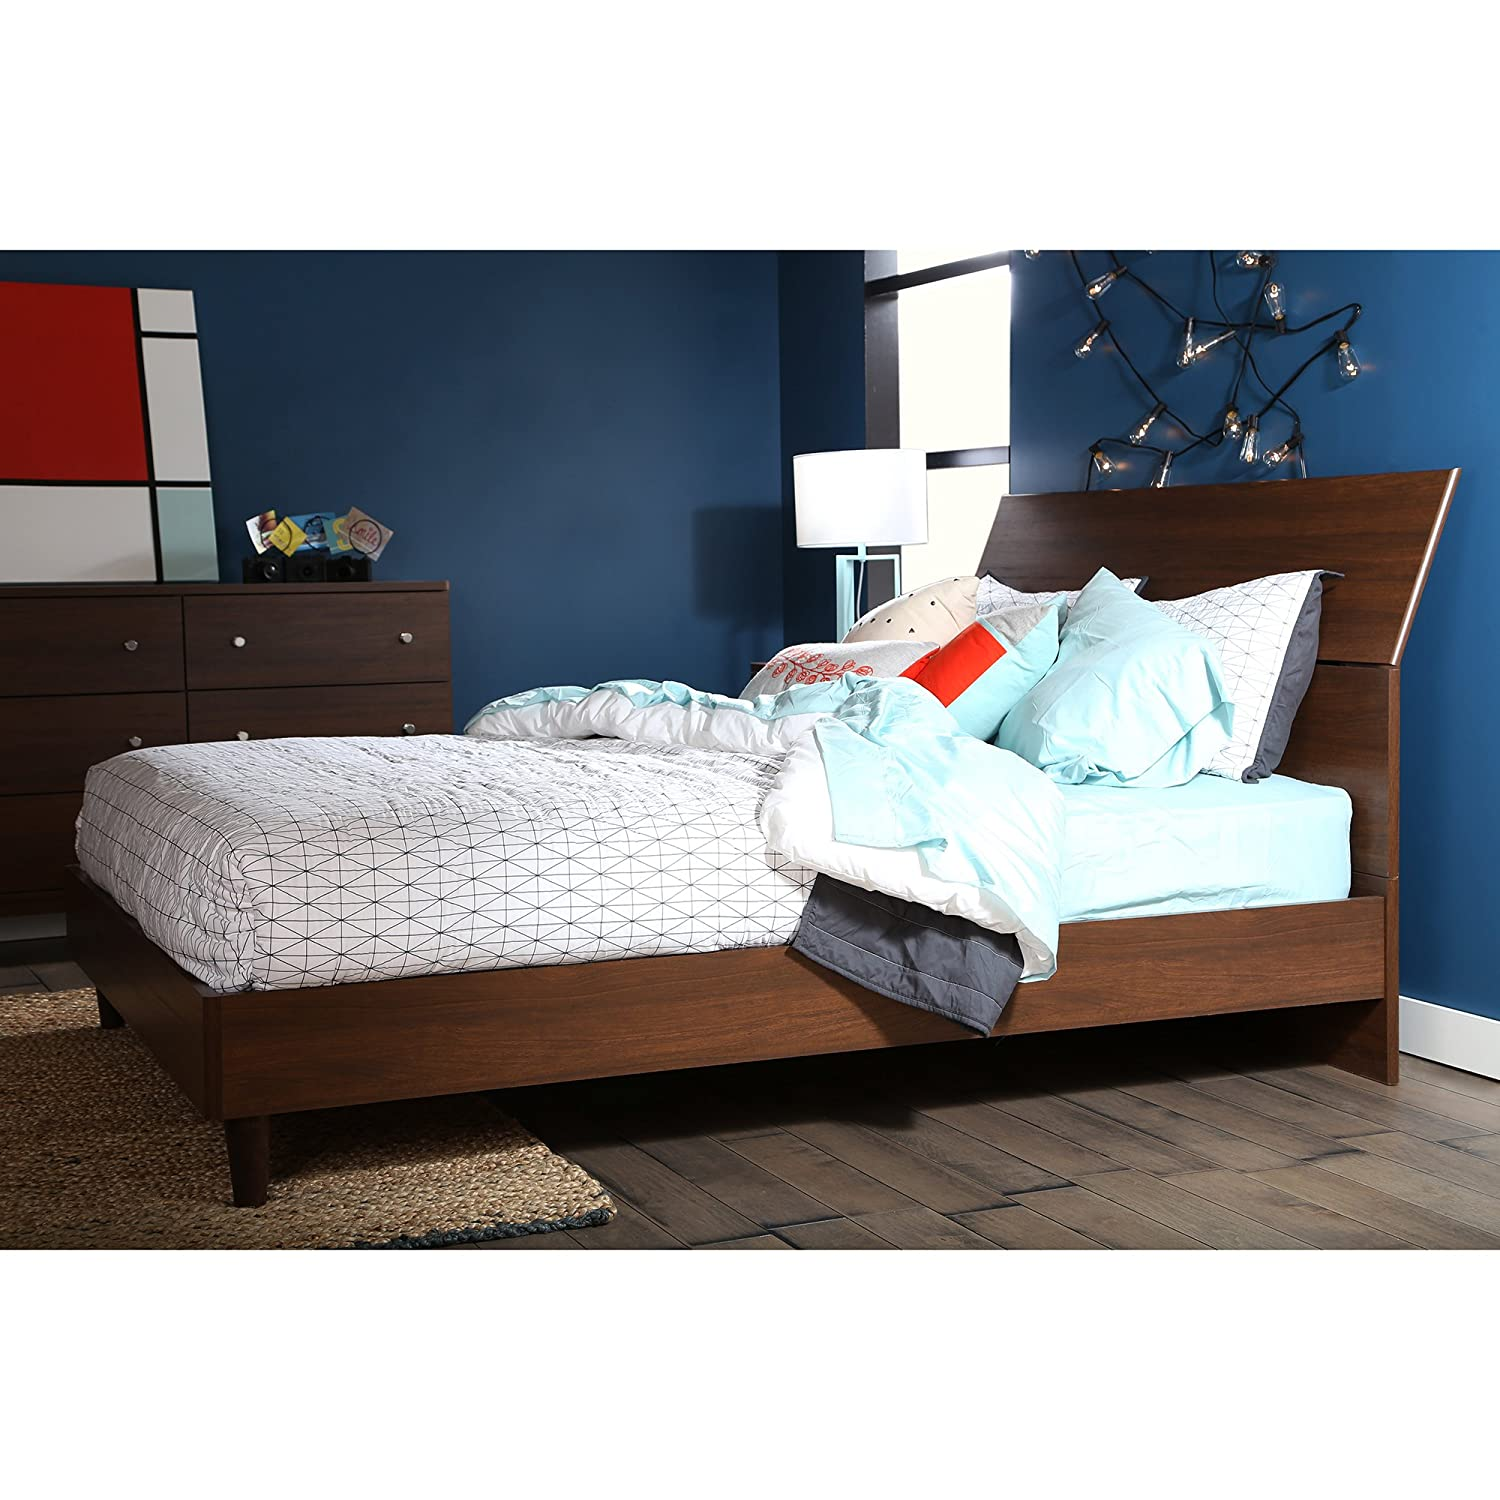 south shore inch olly midcentury modern platform bed with  - south shore inch olly midcentury modern platform bed with headboard queen brown walnut amazonca home  kitchen